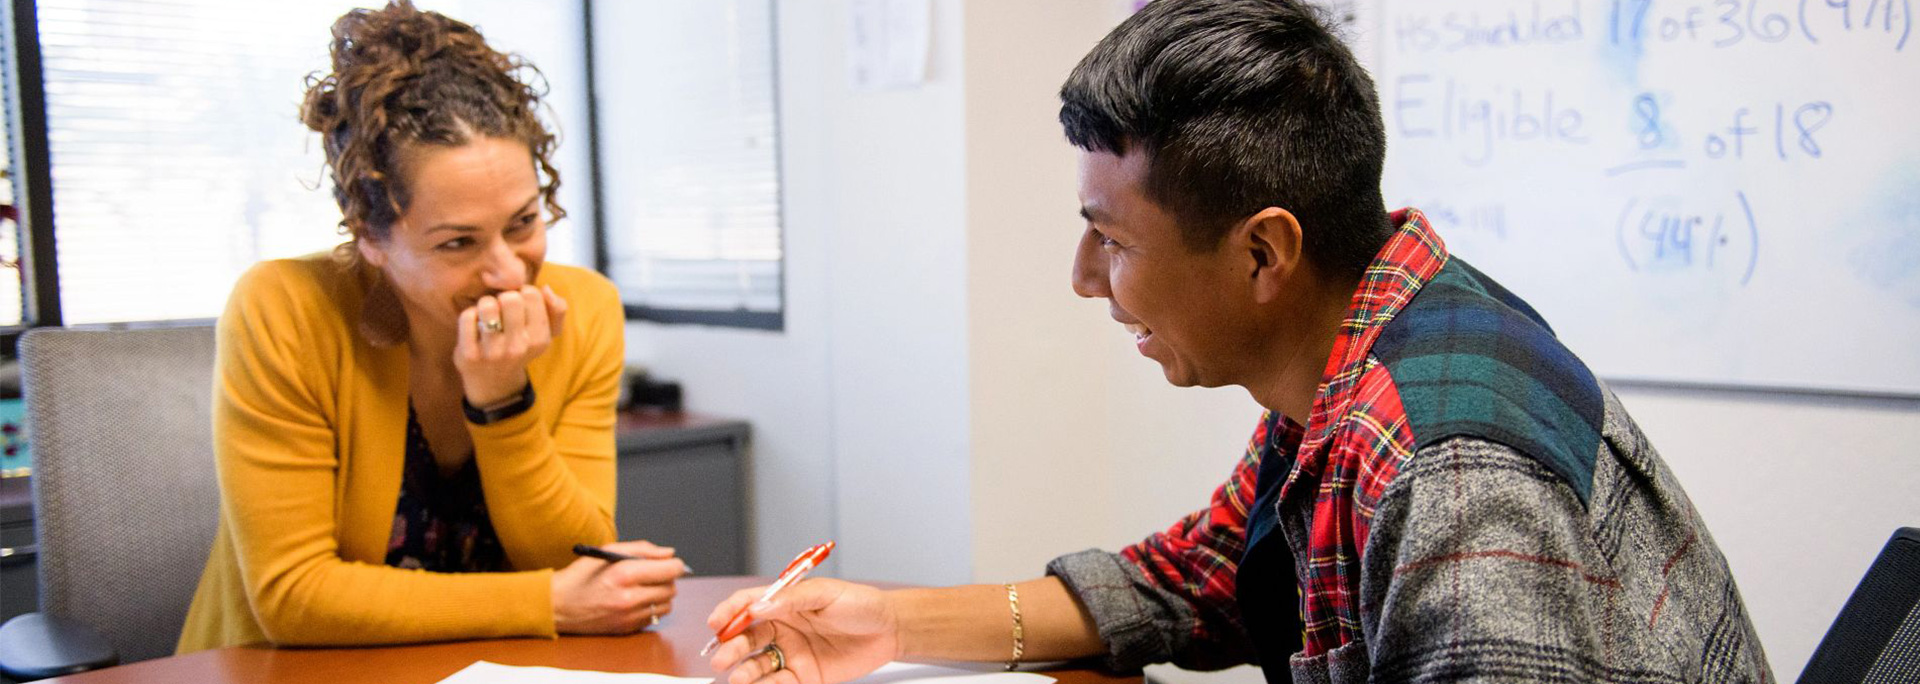 An adviser meets with a student.